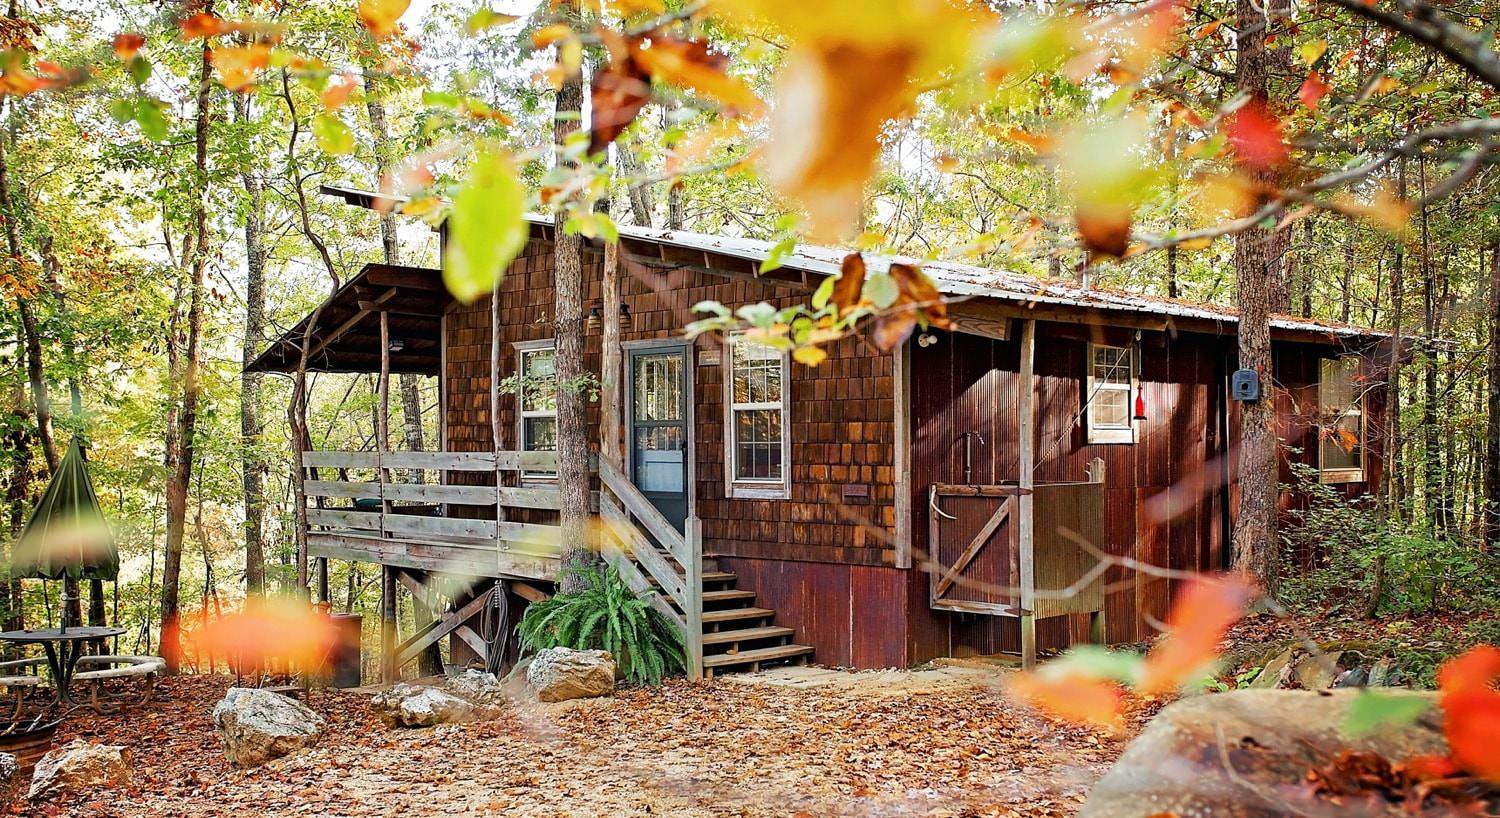 Exterior view of one of the cabins in the fall surrounded by trees with colorful autumn leaves